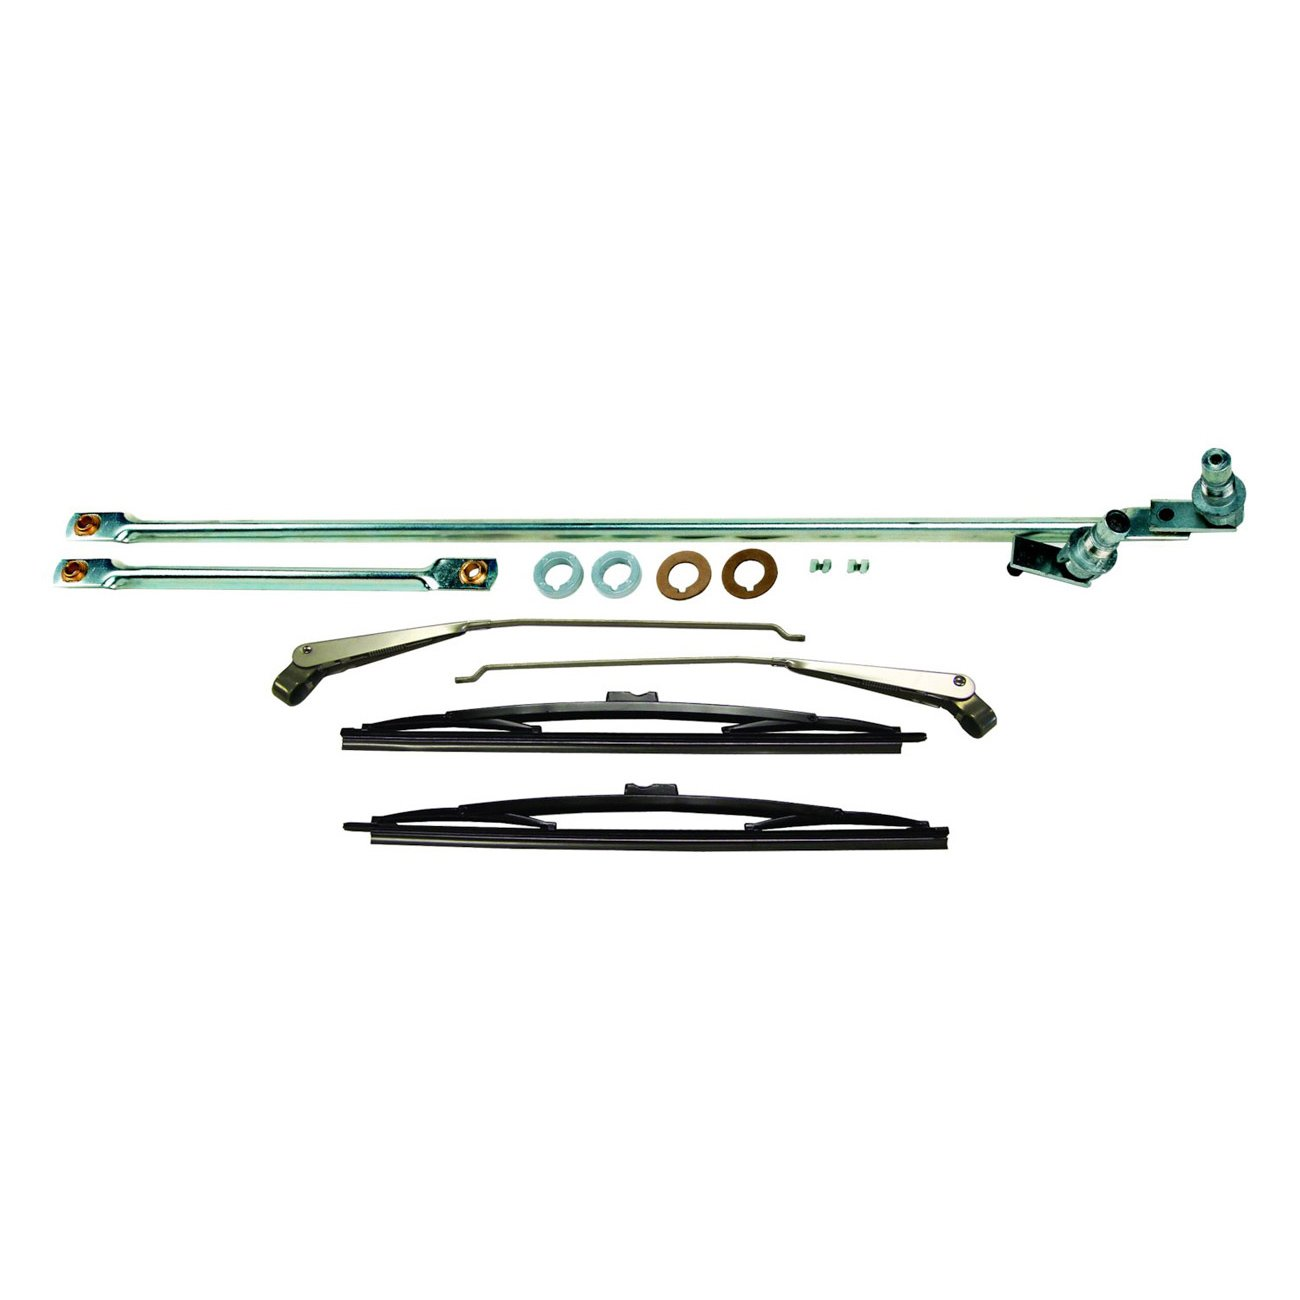 Wiper Linkage Master Kit